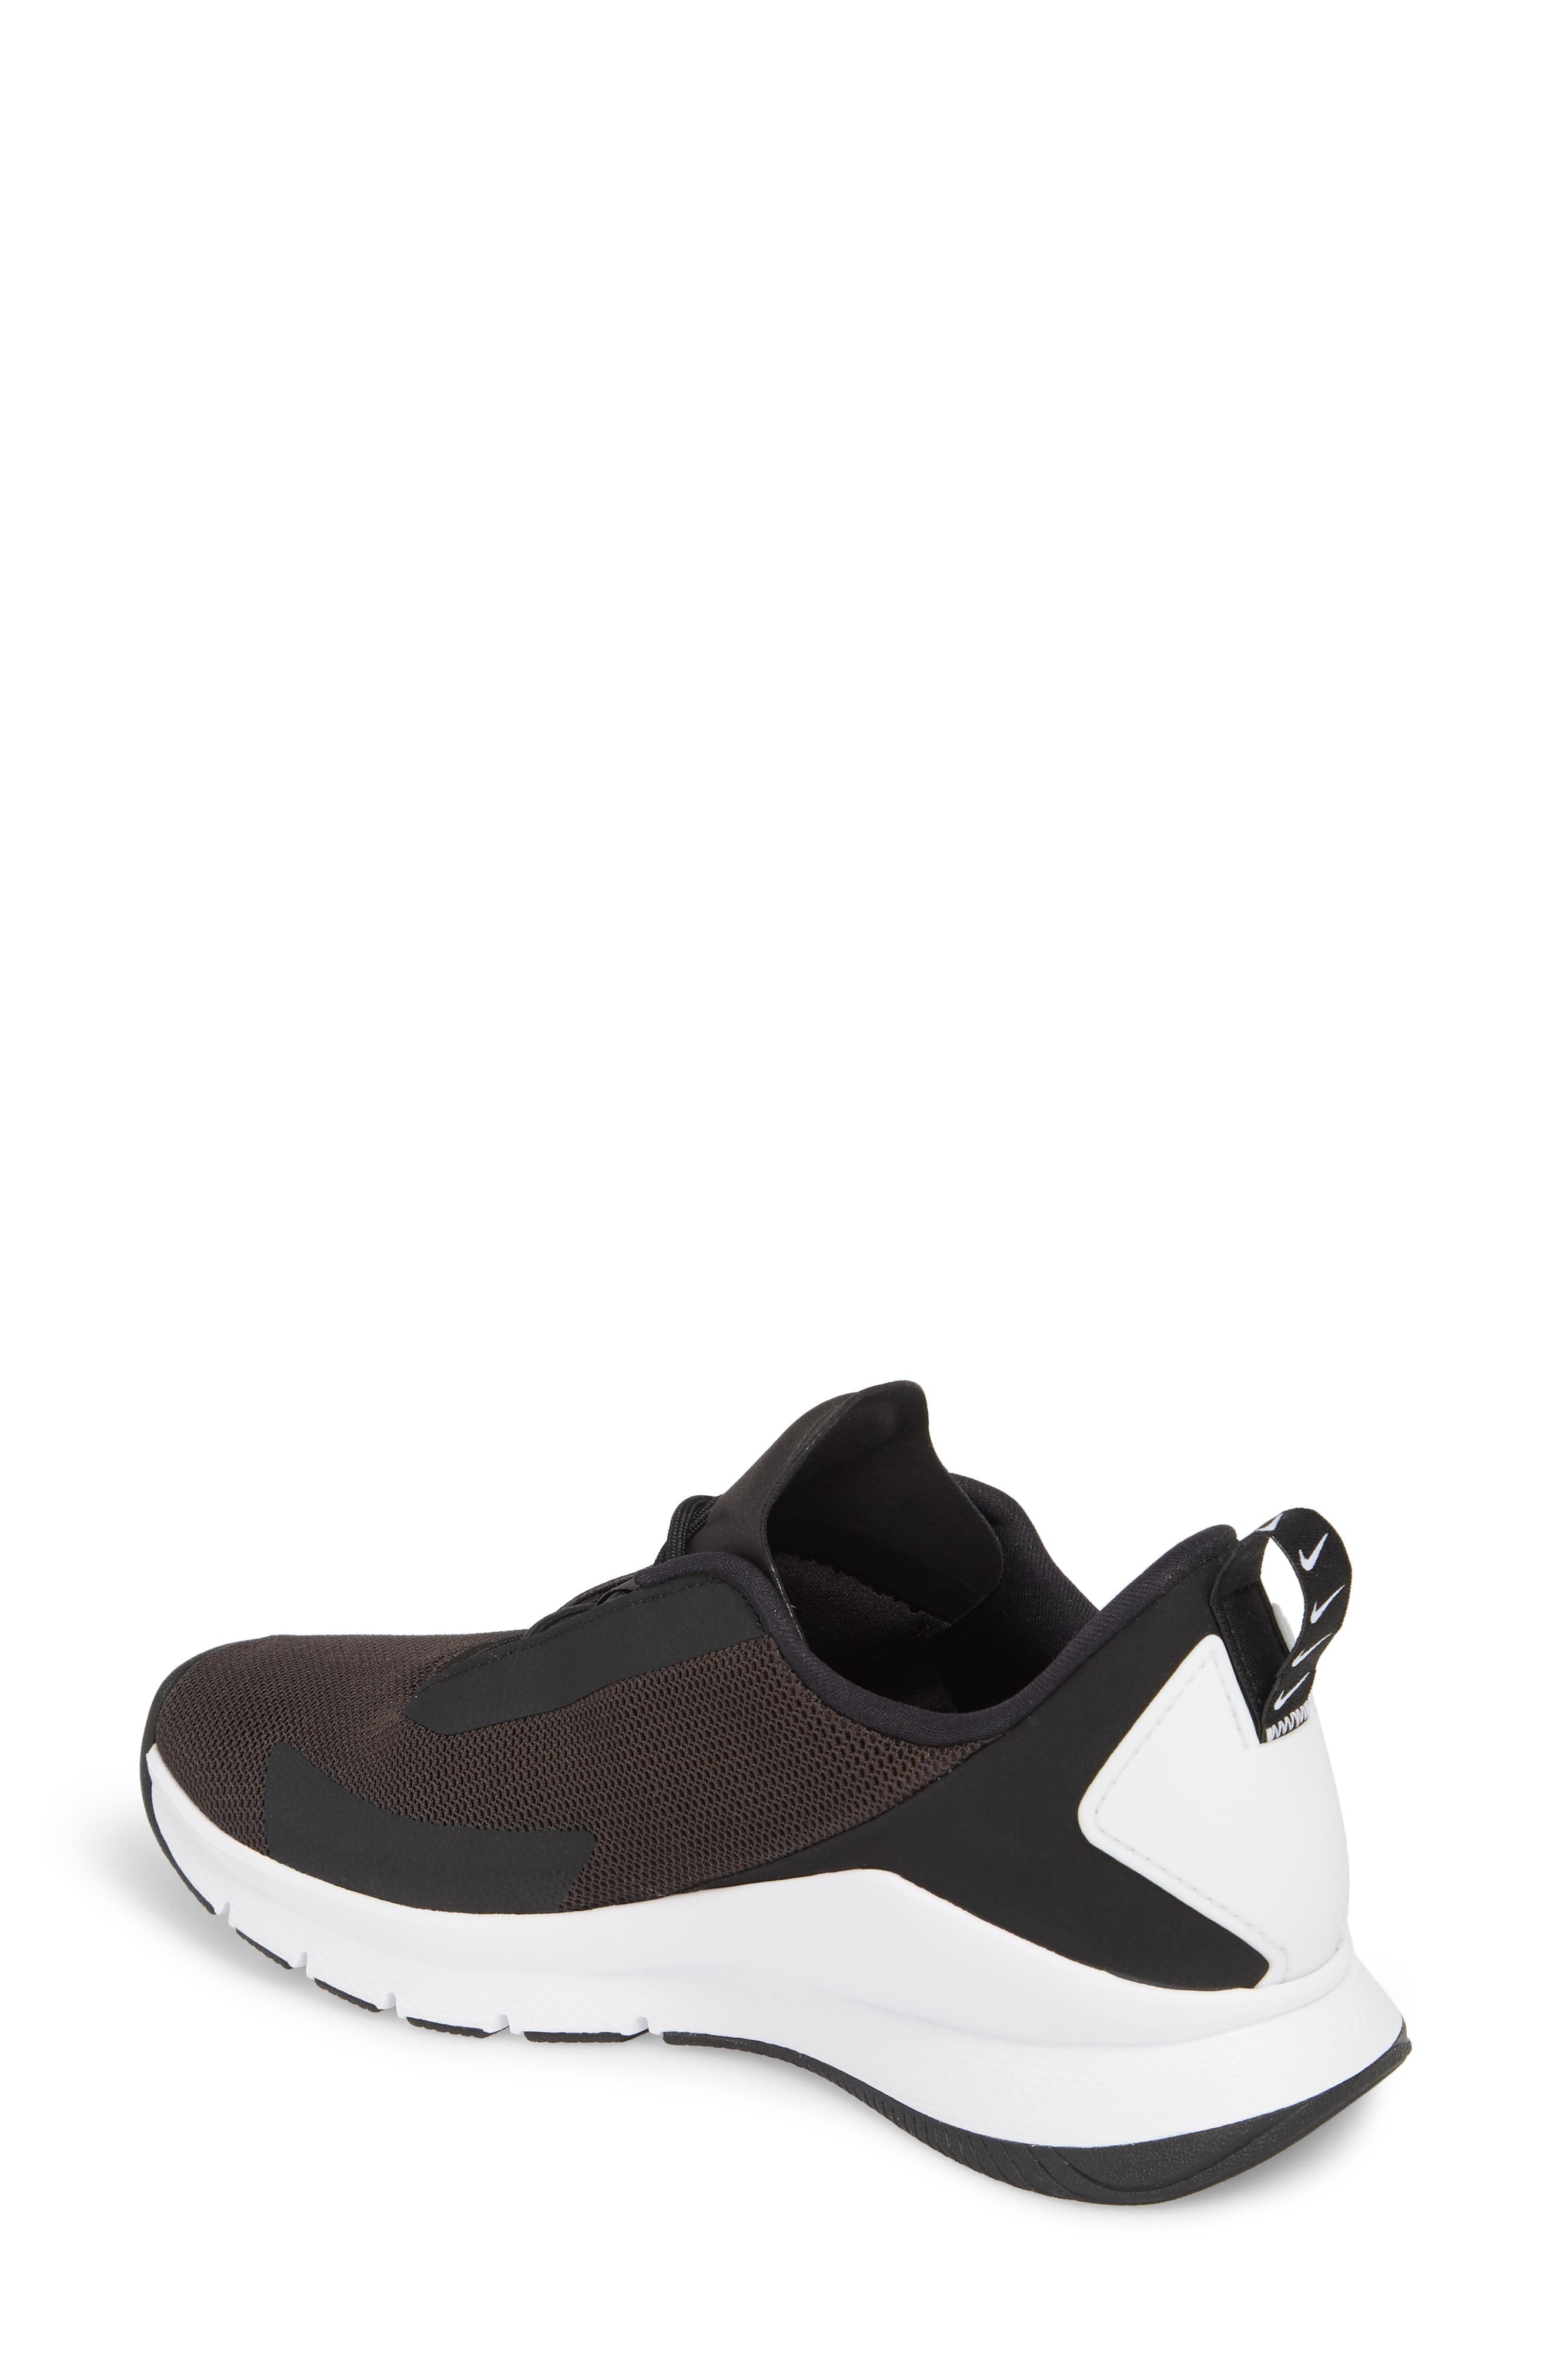 Rivah Sneaker,                             Alternate thumbnail 2, color,                             Black/ Black/ White